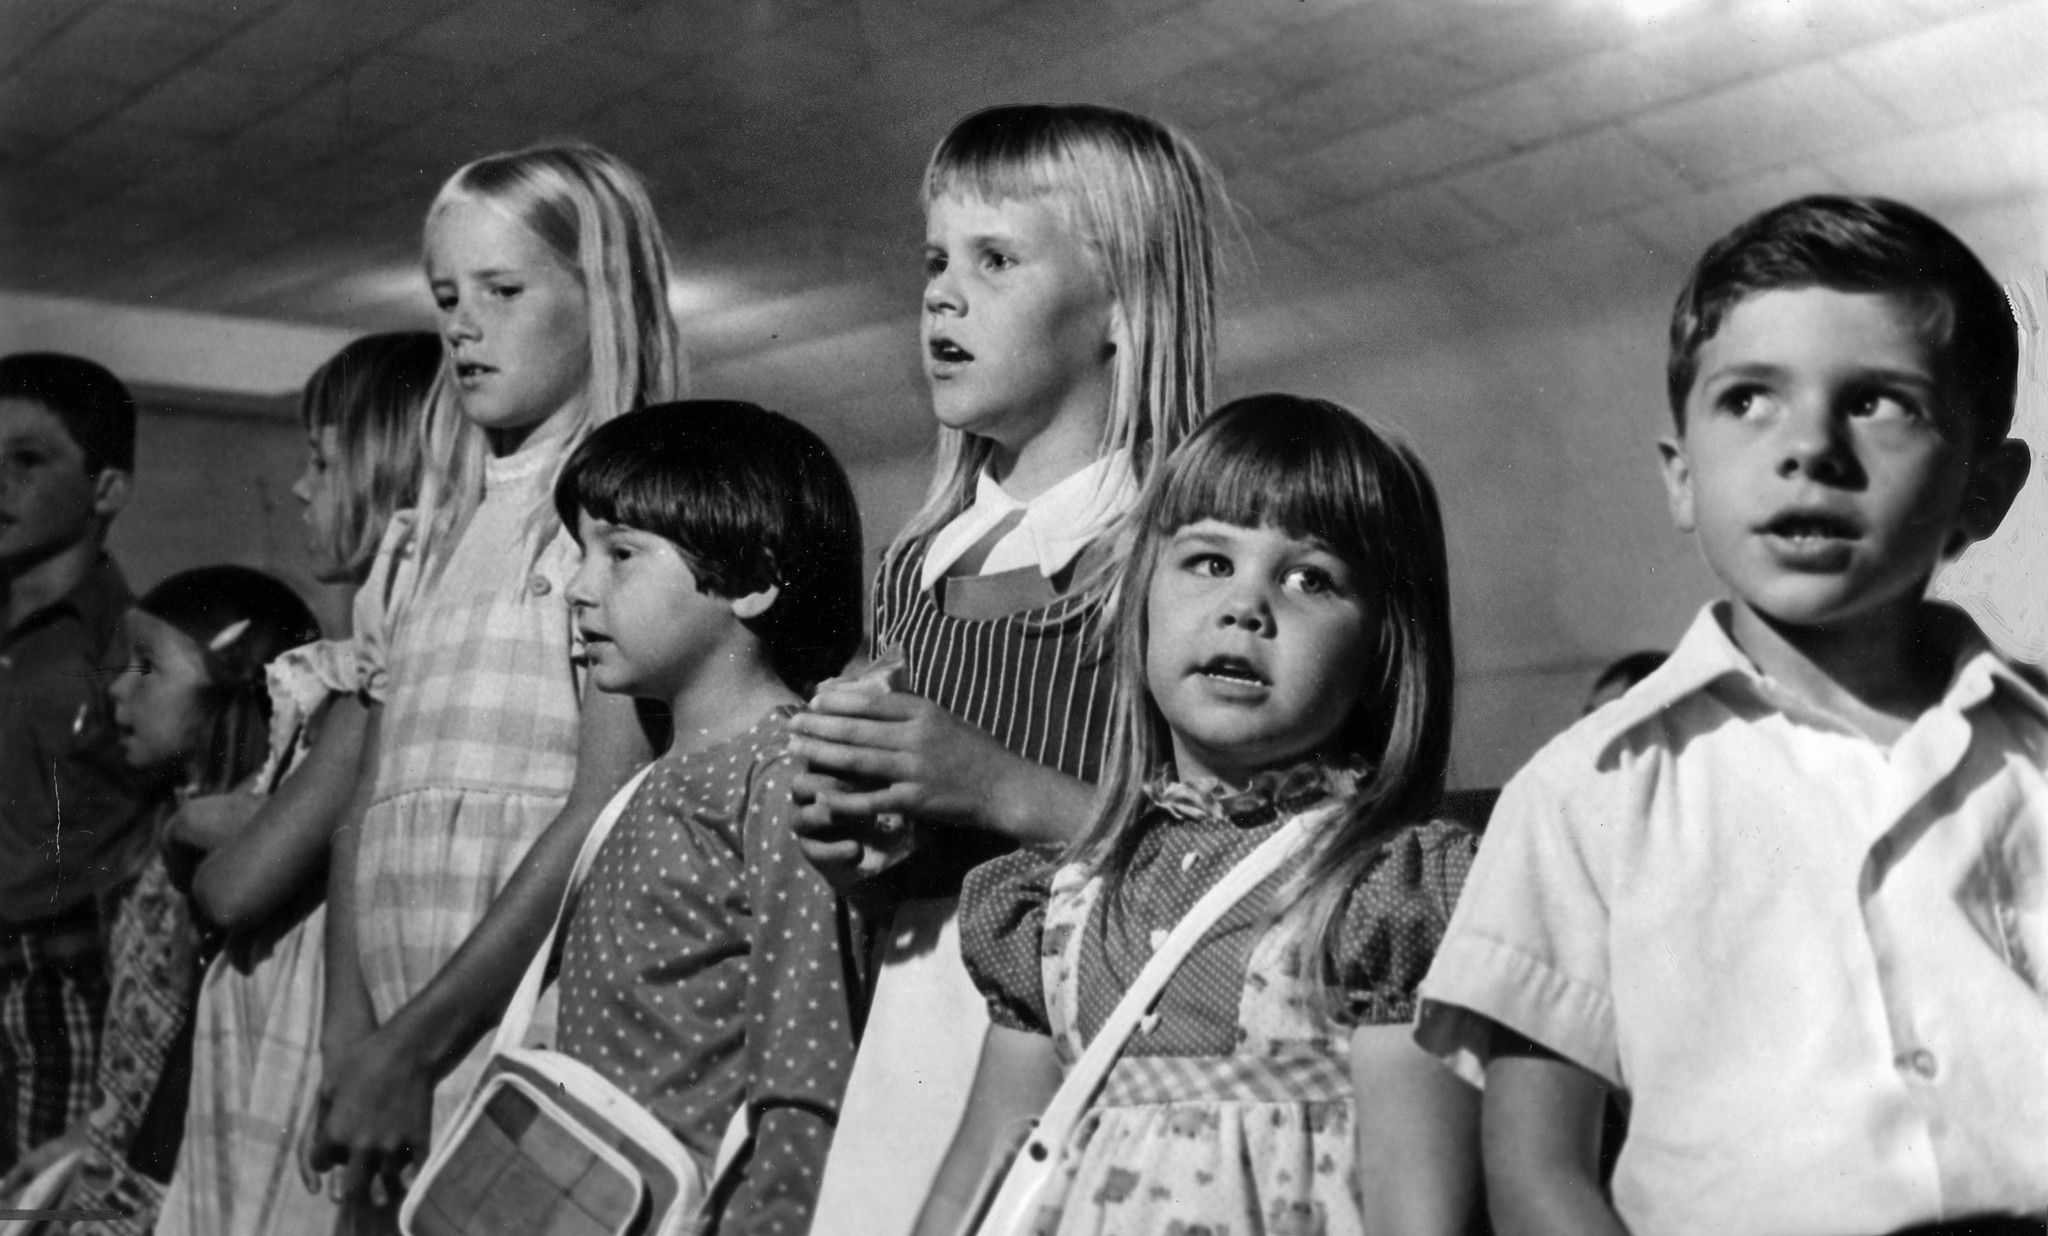 July 17, 1976: Sandy Zylstra, 7, third from right, was the last child to get off school bus before k